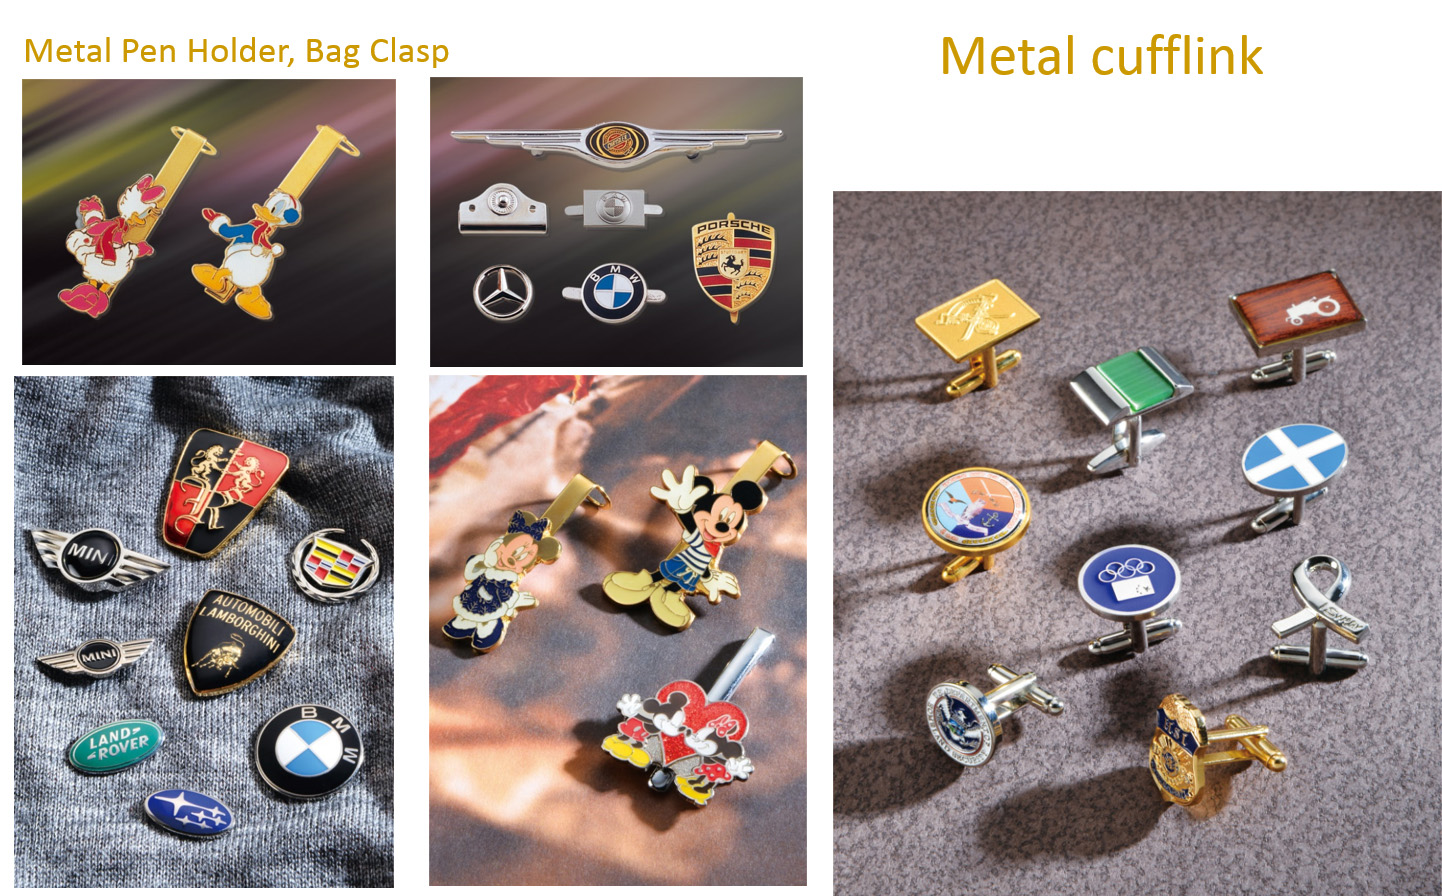 Metal Pen Holder, Bag Clasp and Metal cufflink